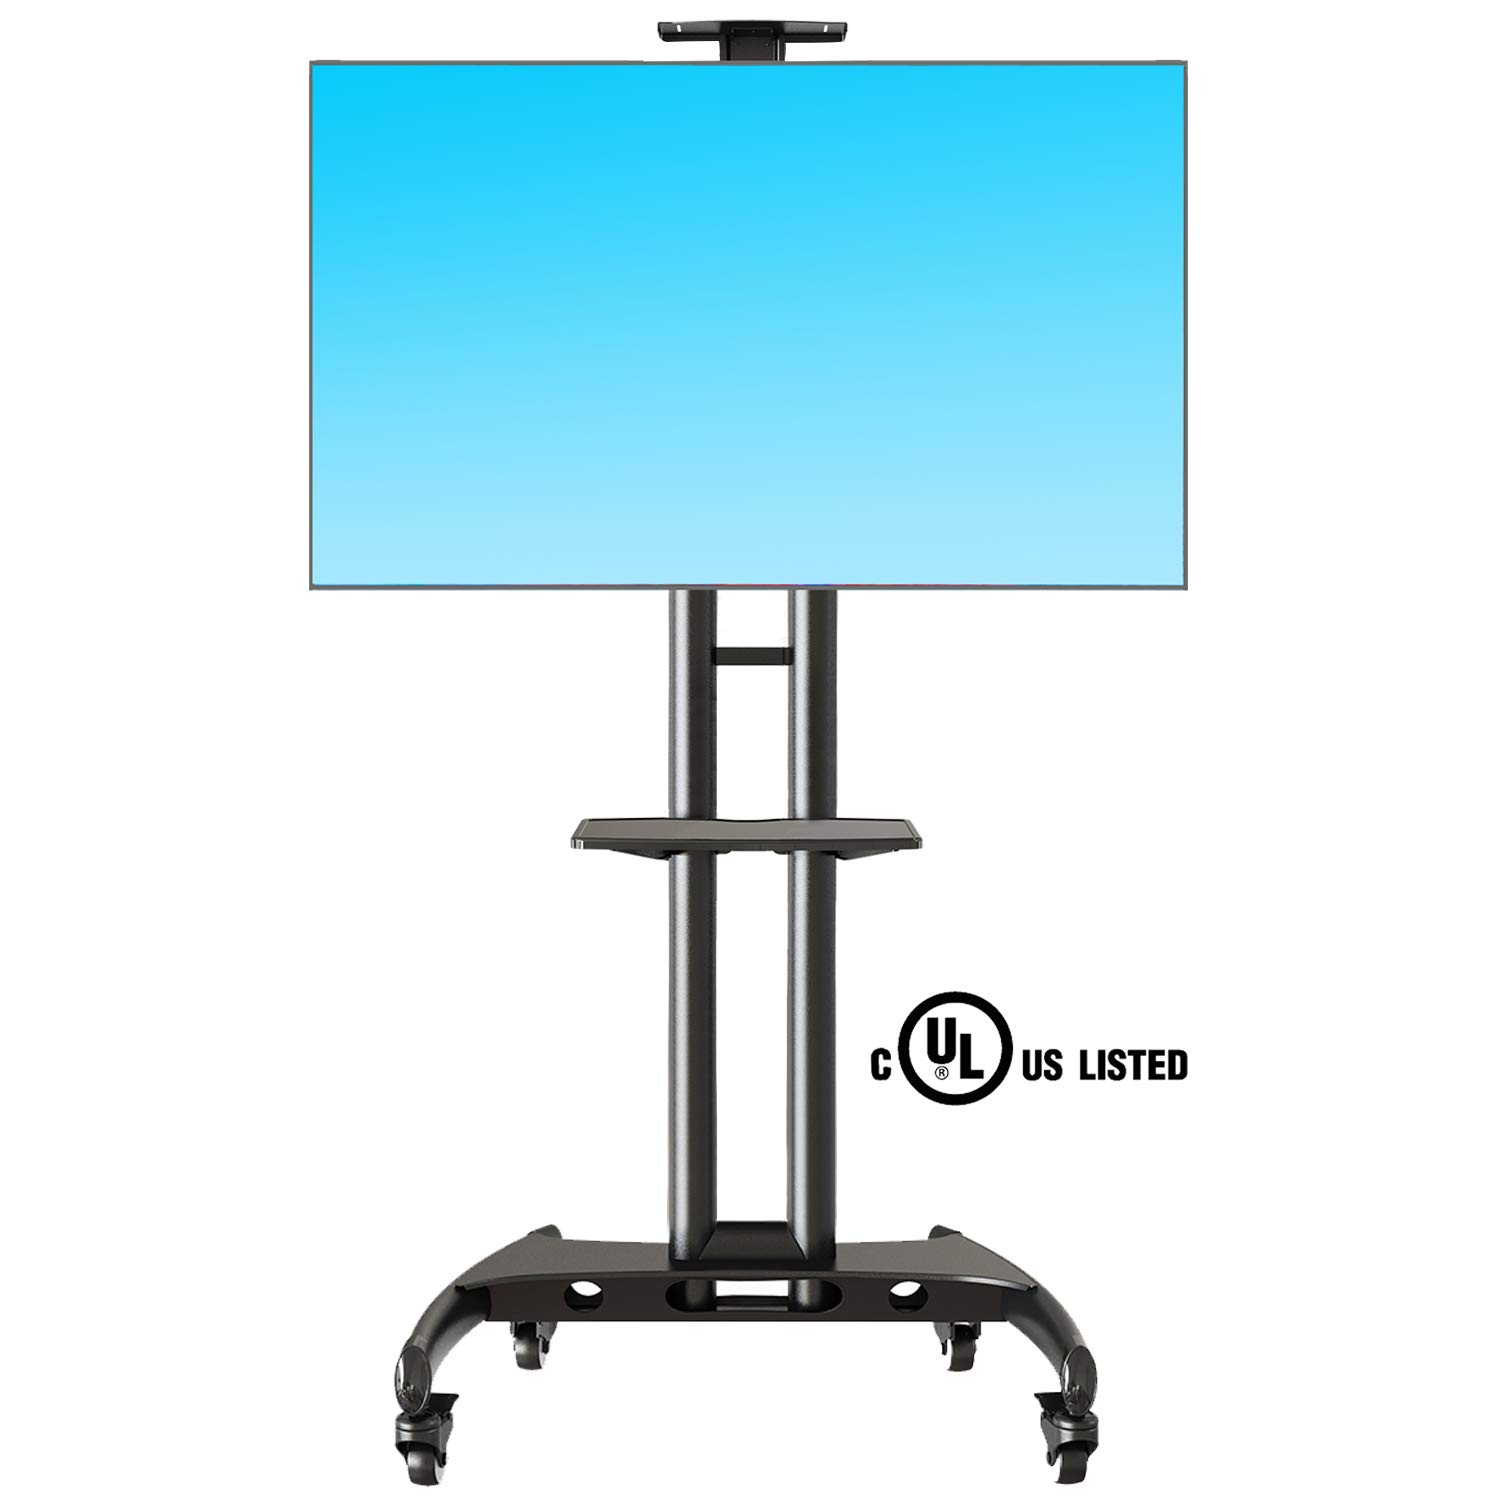 NB North Bayou Mobile TV Cart TV Stand with Wheels for 32 to 65 Inch LCD LED OLED Plasma Flat Panel Screens up to 100lbs AVA1500-60-1P (Black) by NB North Bayou